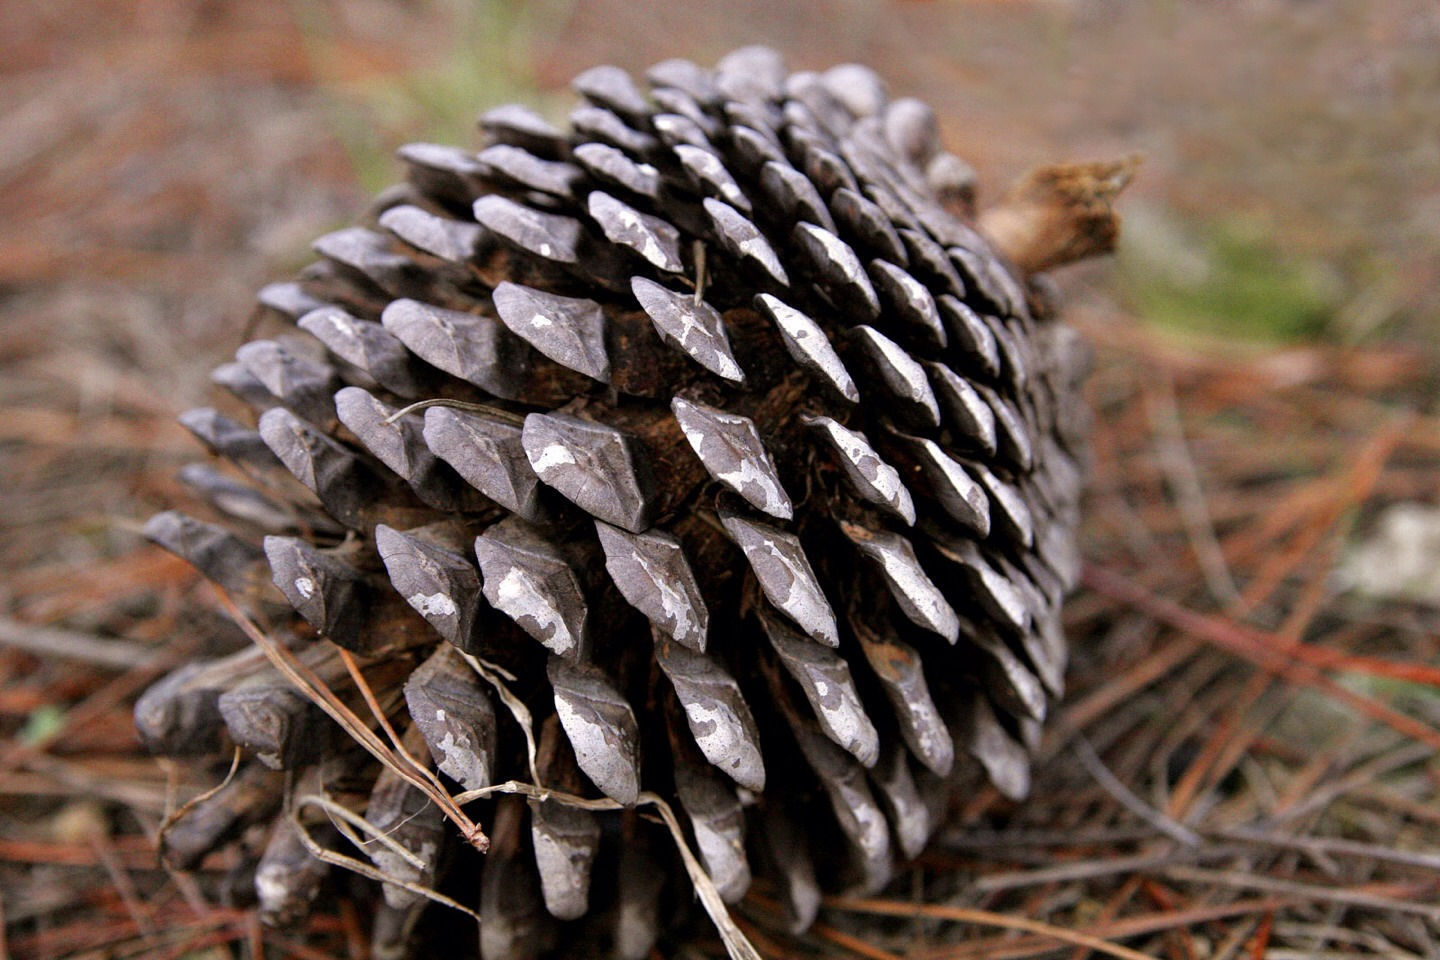 Pine cones for immunity - take concentrated pine cone extract found in products like ImmunExtra or Immunophen.